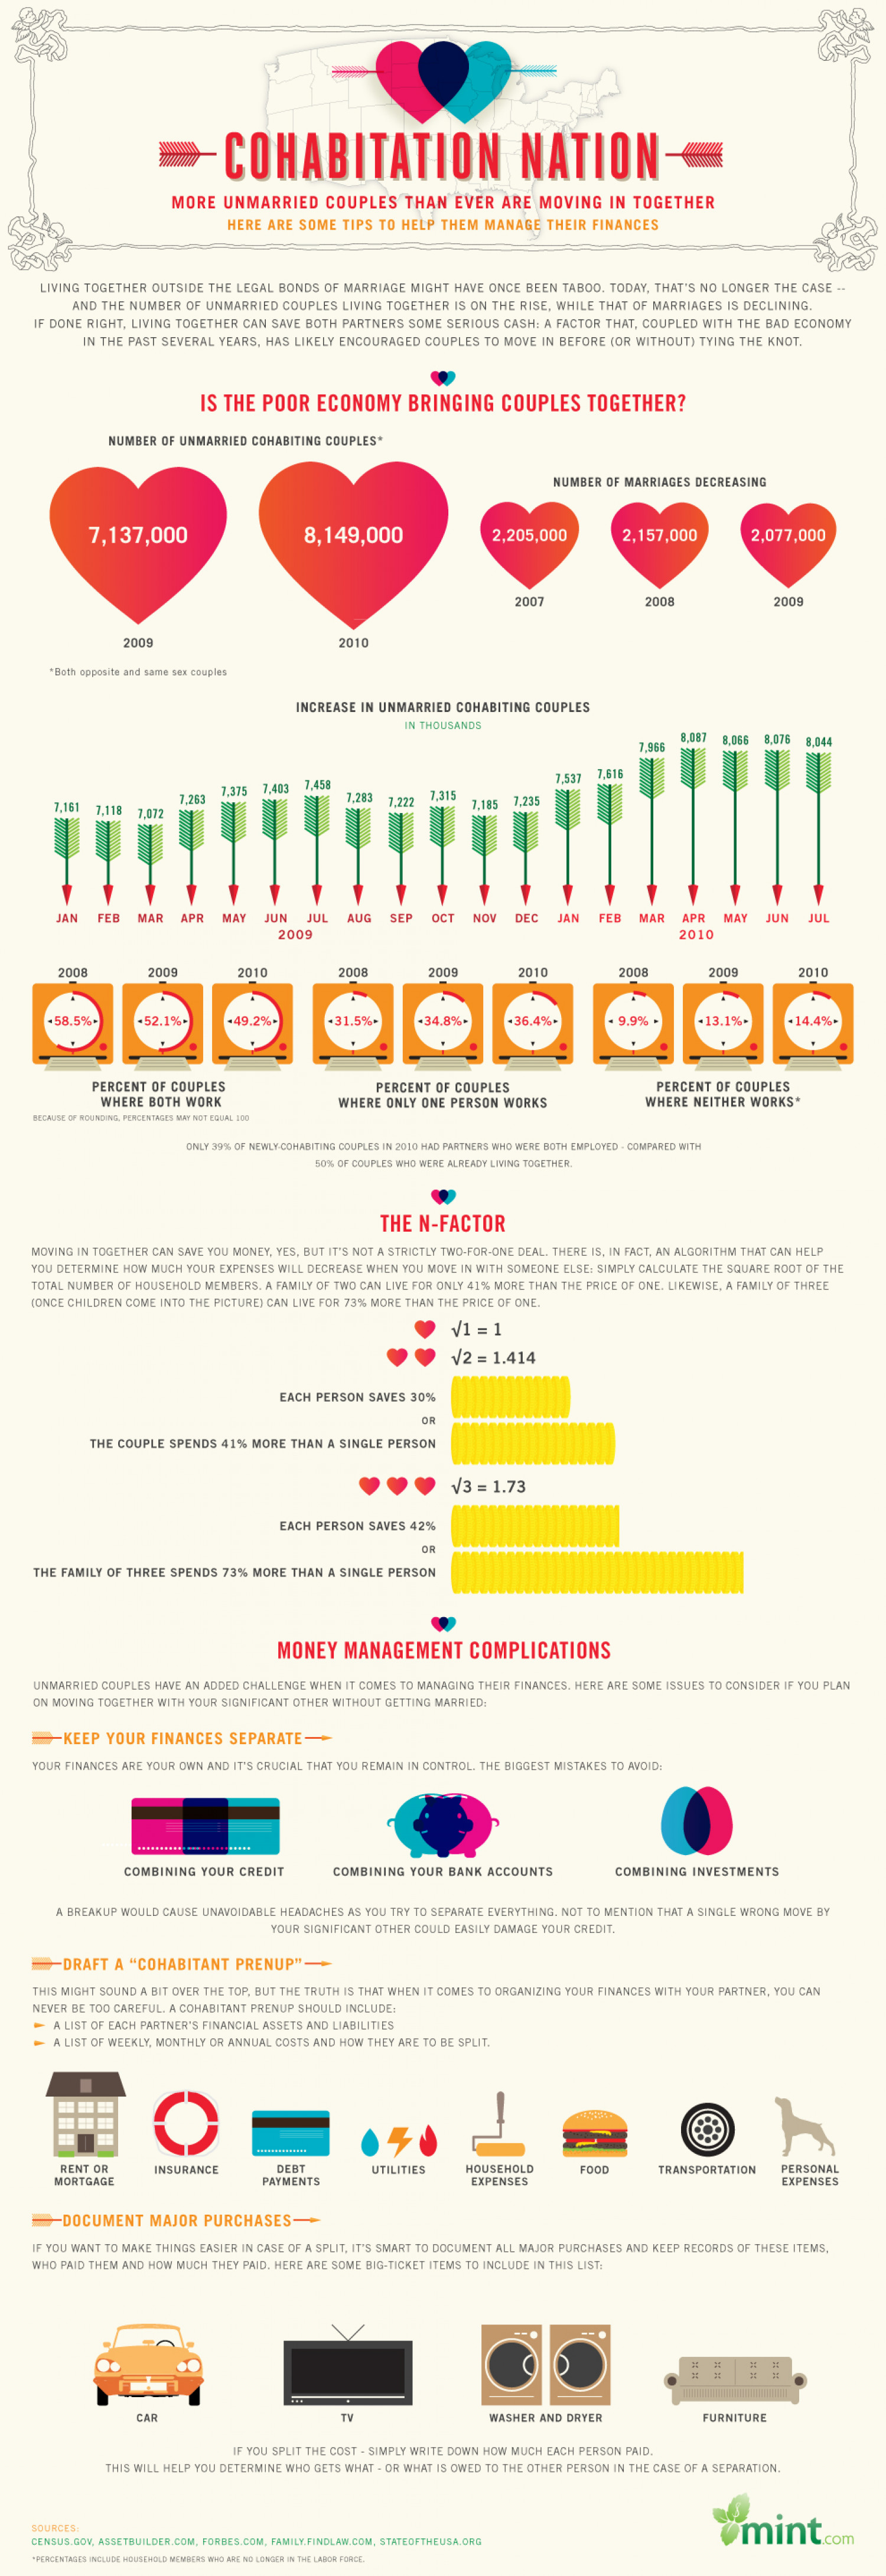 Cohabitation Nation: The Financials of Living Together Without Getting Married Infographic